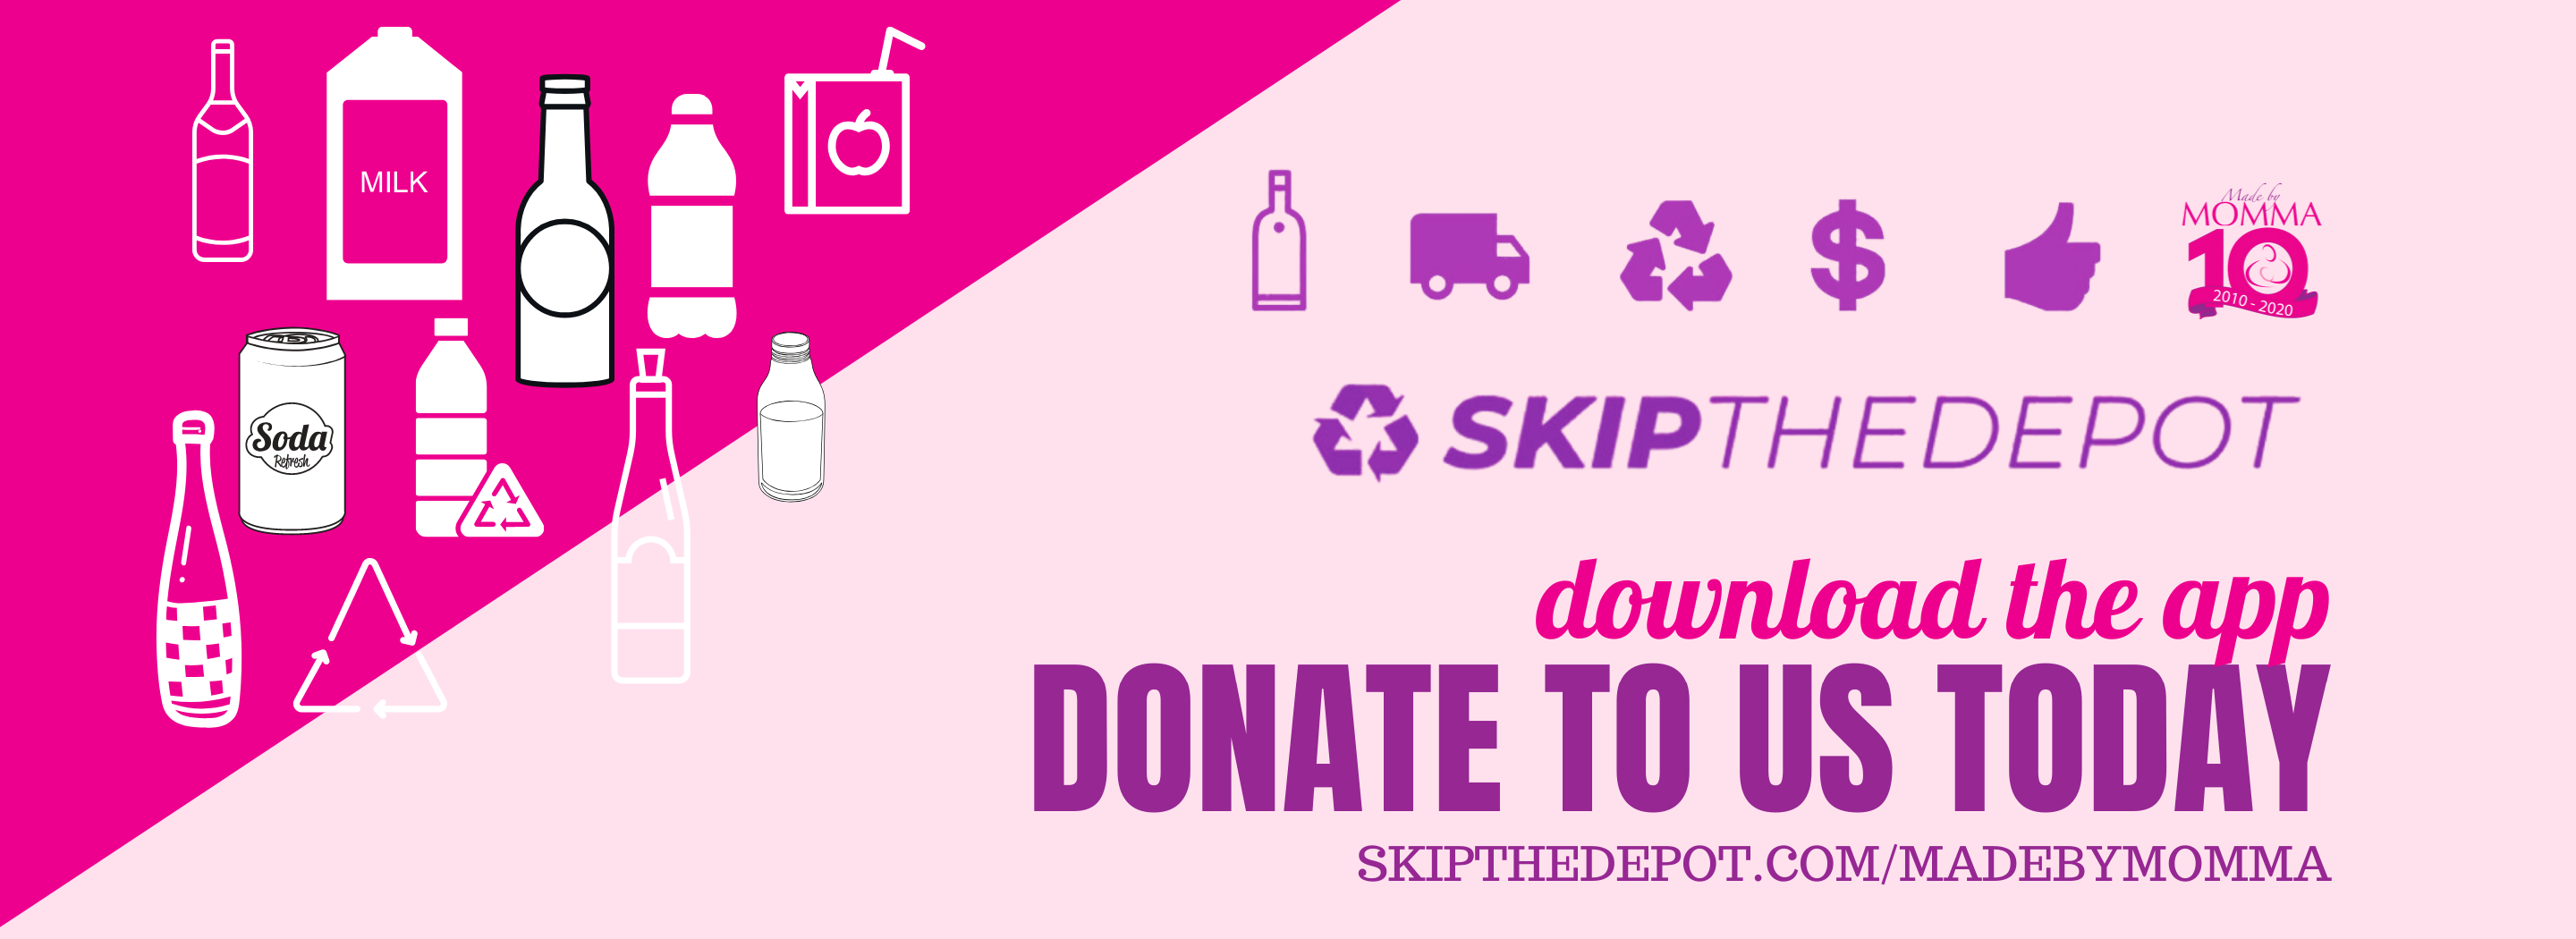 <b>DONATE YOUR REFUNDABLE BOTTLES TO MADE BY MOMMA THROUGH SKIP THE DEPOT - FREE PICK UP!</b>